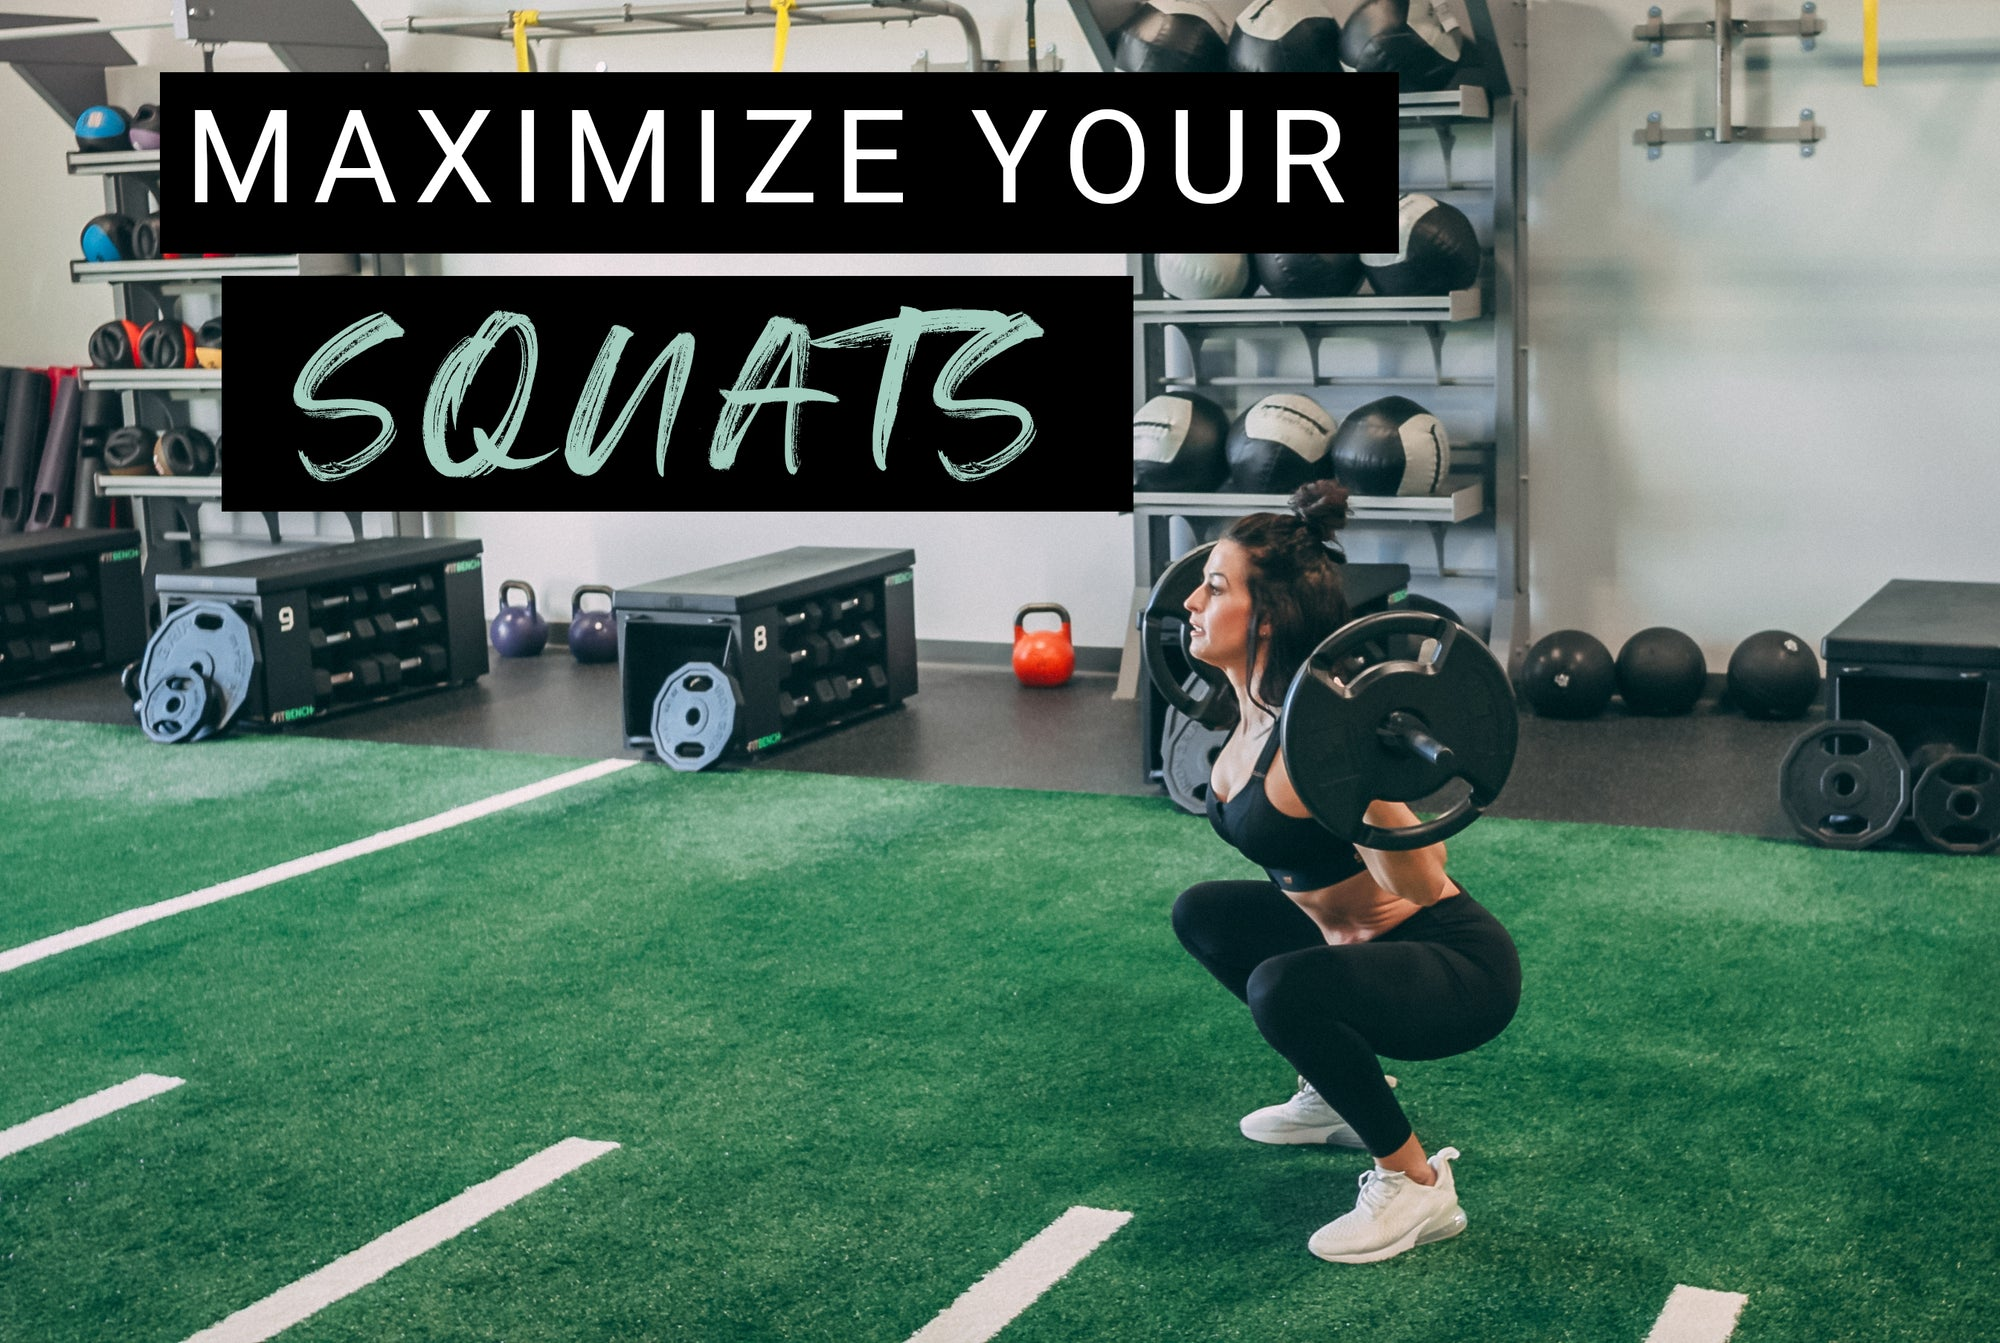 How to Maximize Your Squats